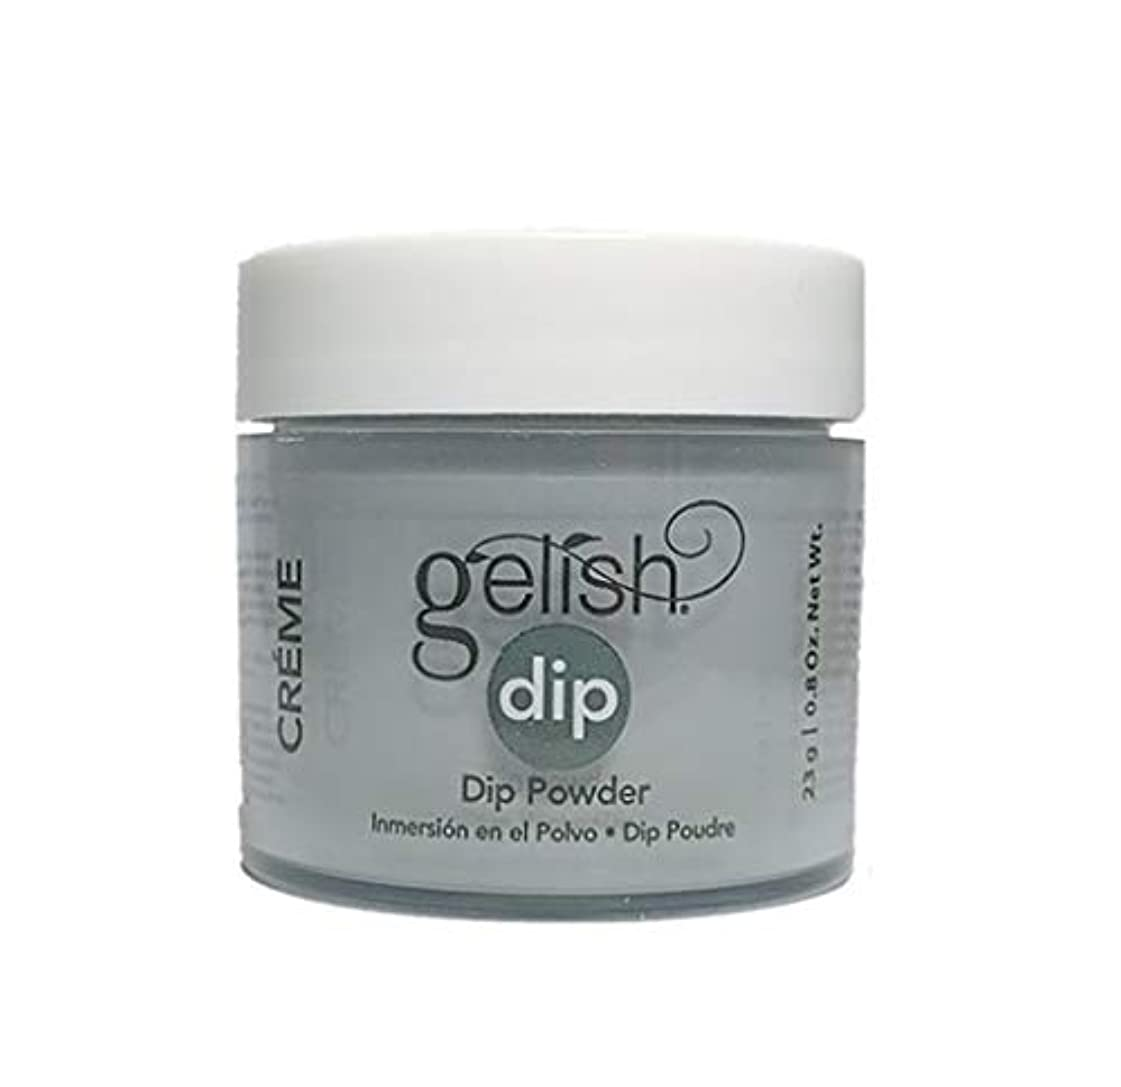 雨の時暗いHarmony Gelish - Dip Powder - Fashion Week Chic - 23g / 0.8oz